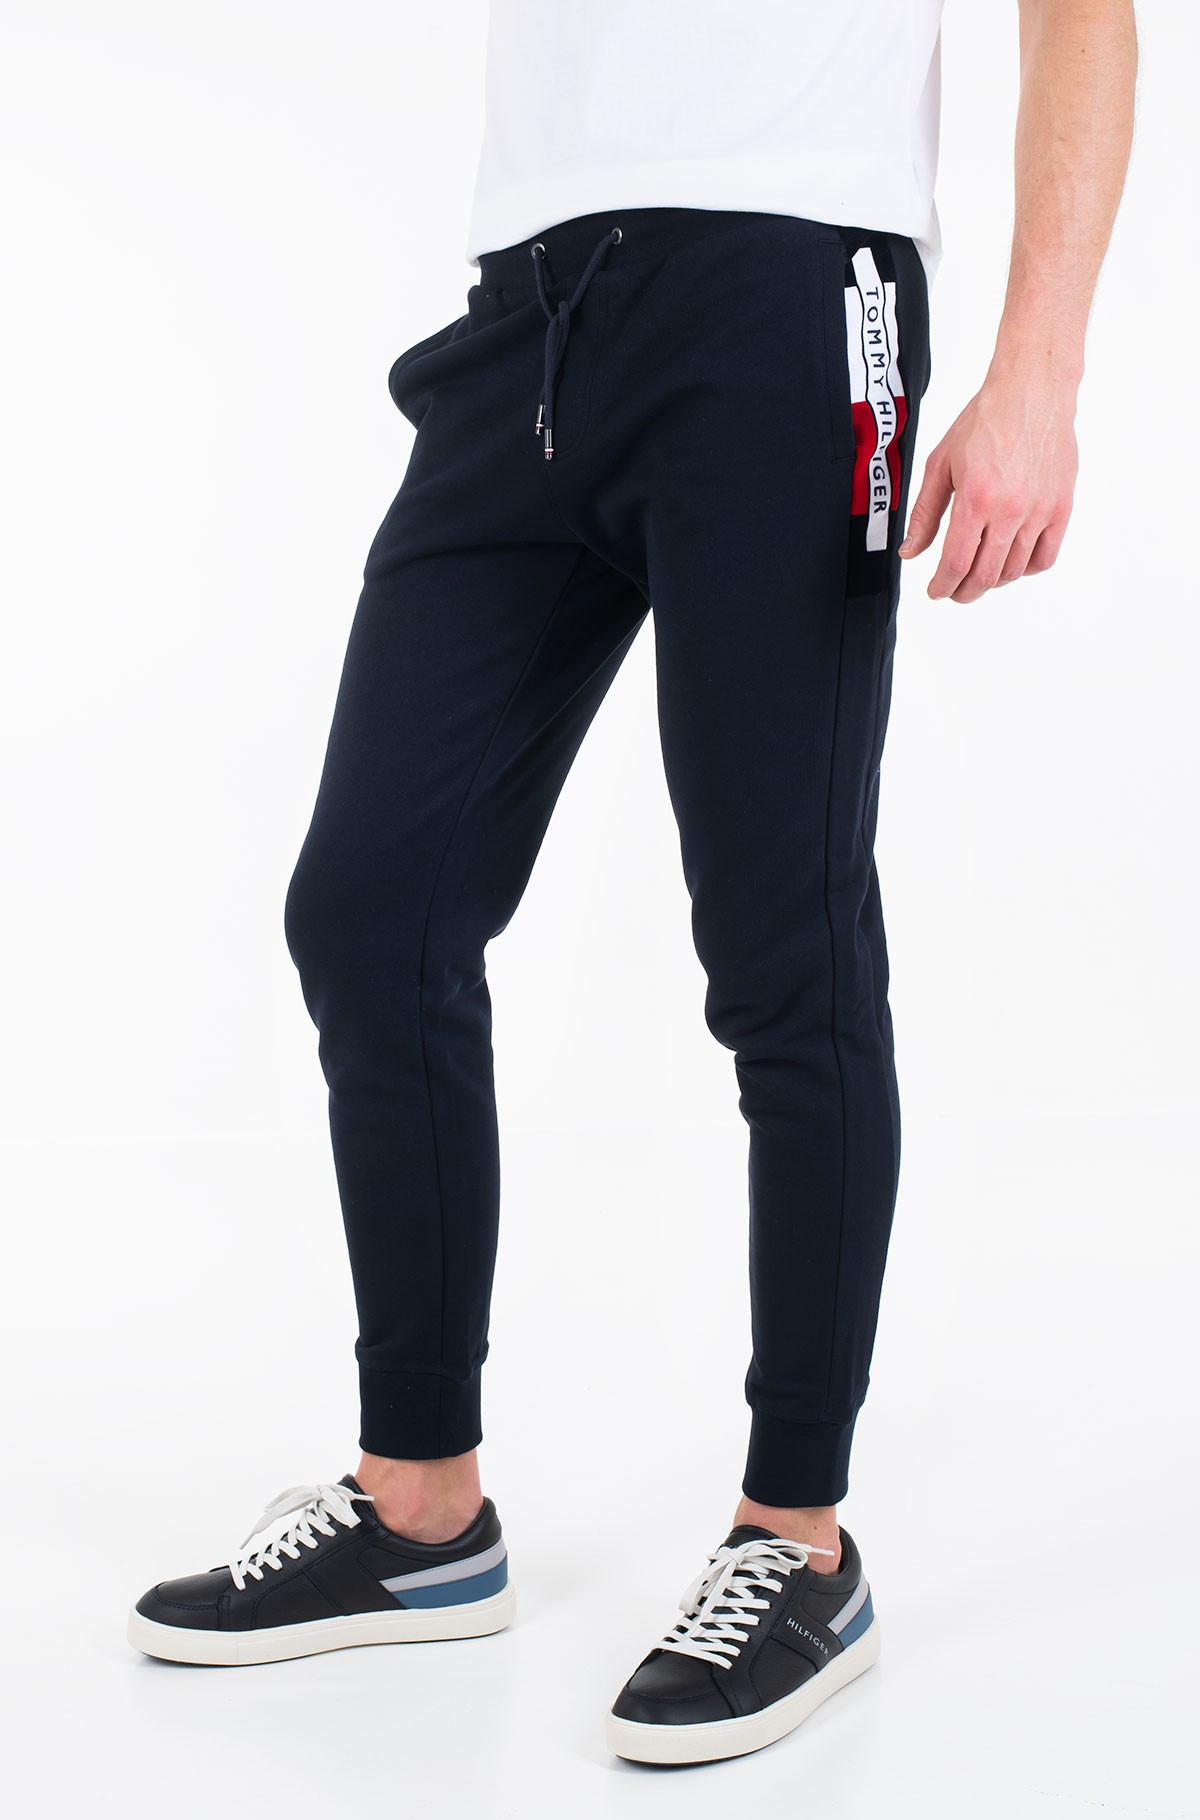 Sportinės kelnės FLOCKED HILFIGER SWEATPANTS-full-1